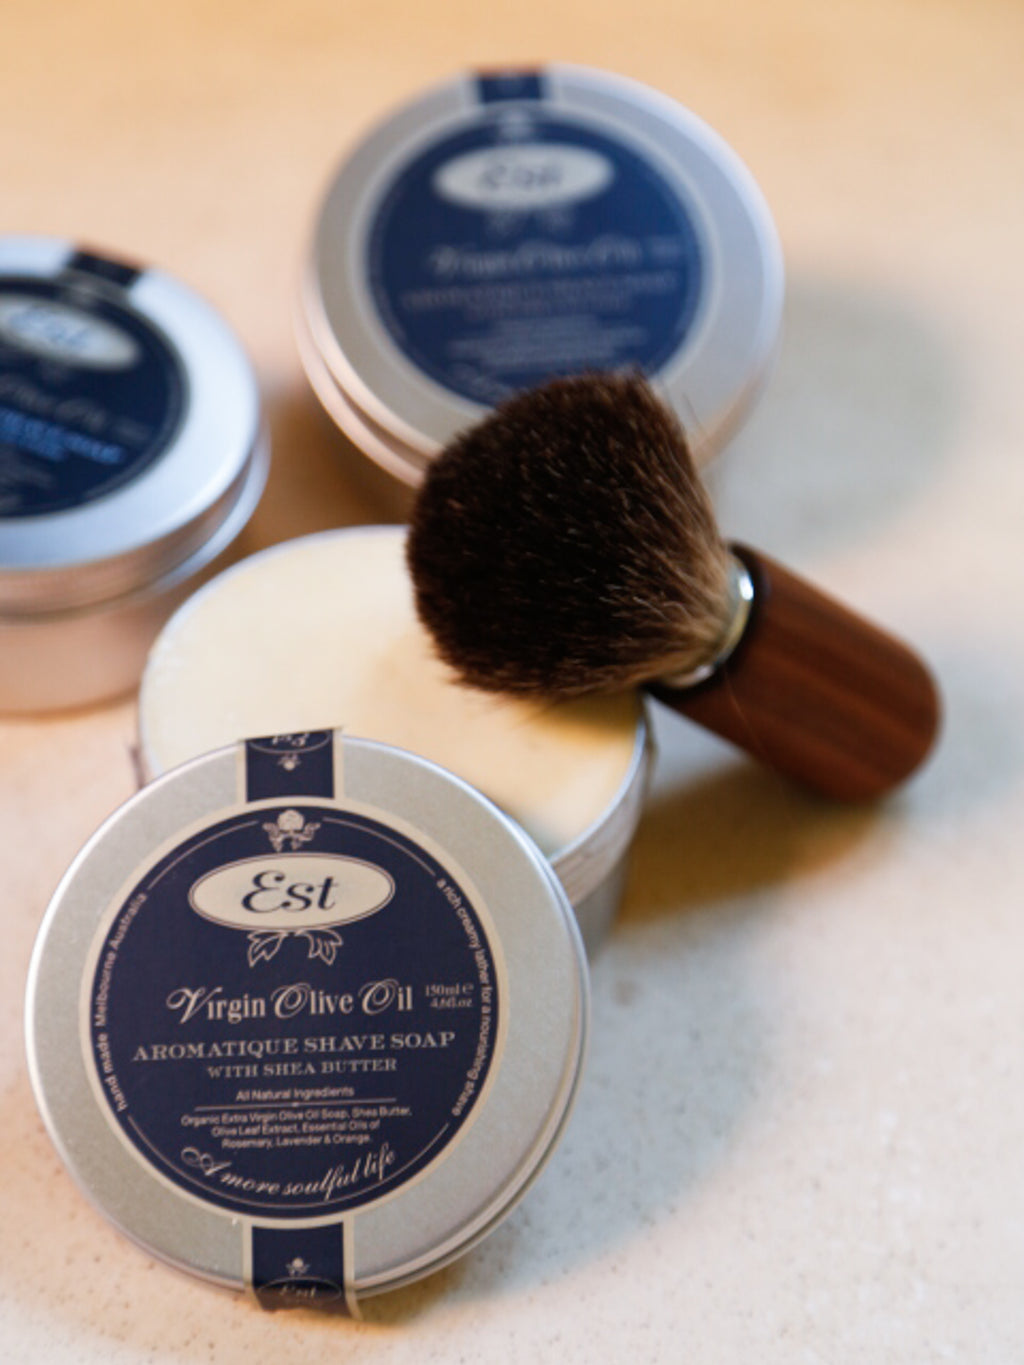 Aromatique Shave Soap